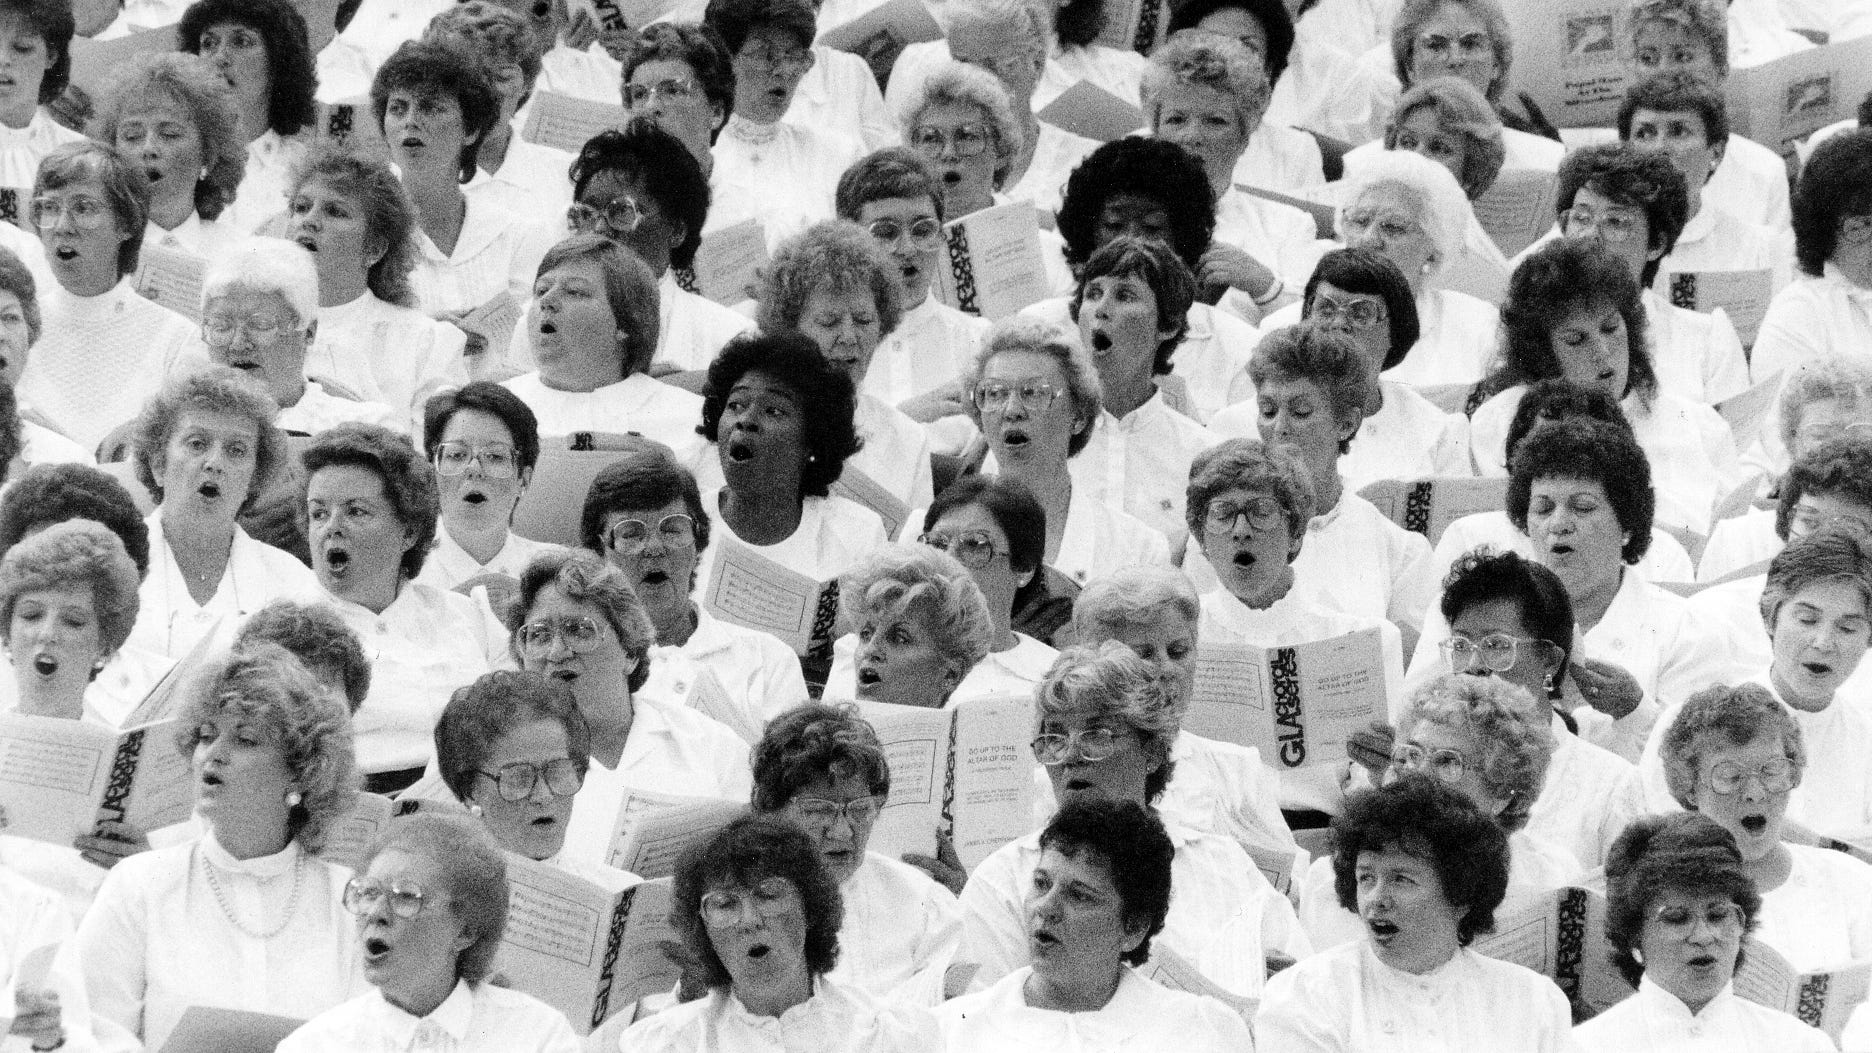 A choir sings during the pope's appearance at the Silverdome